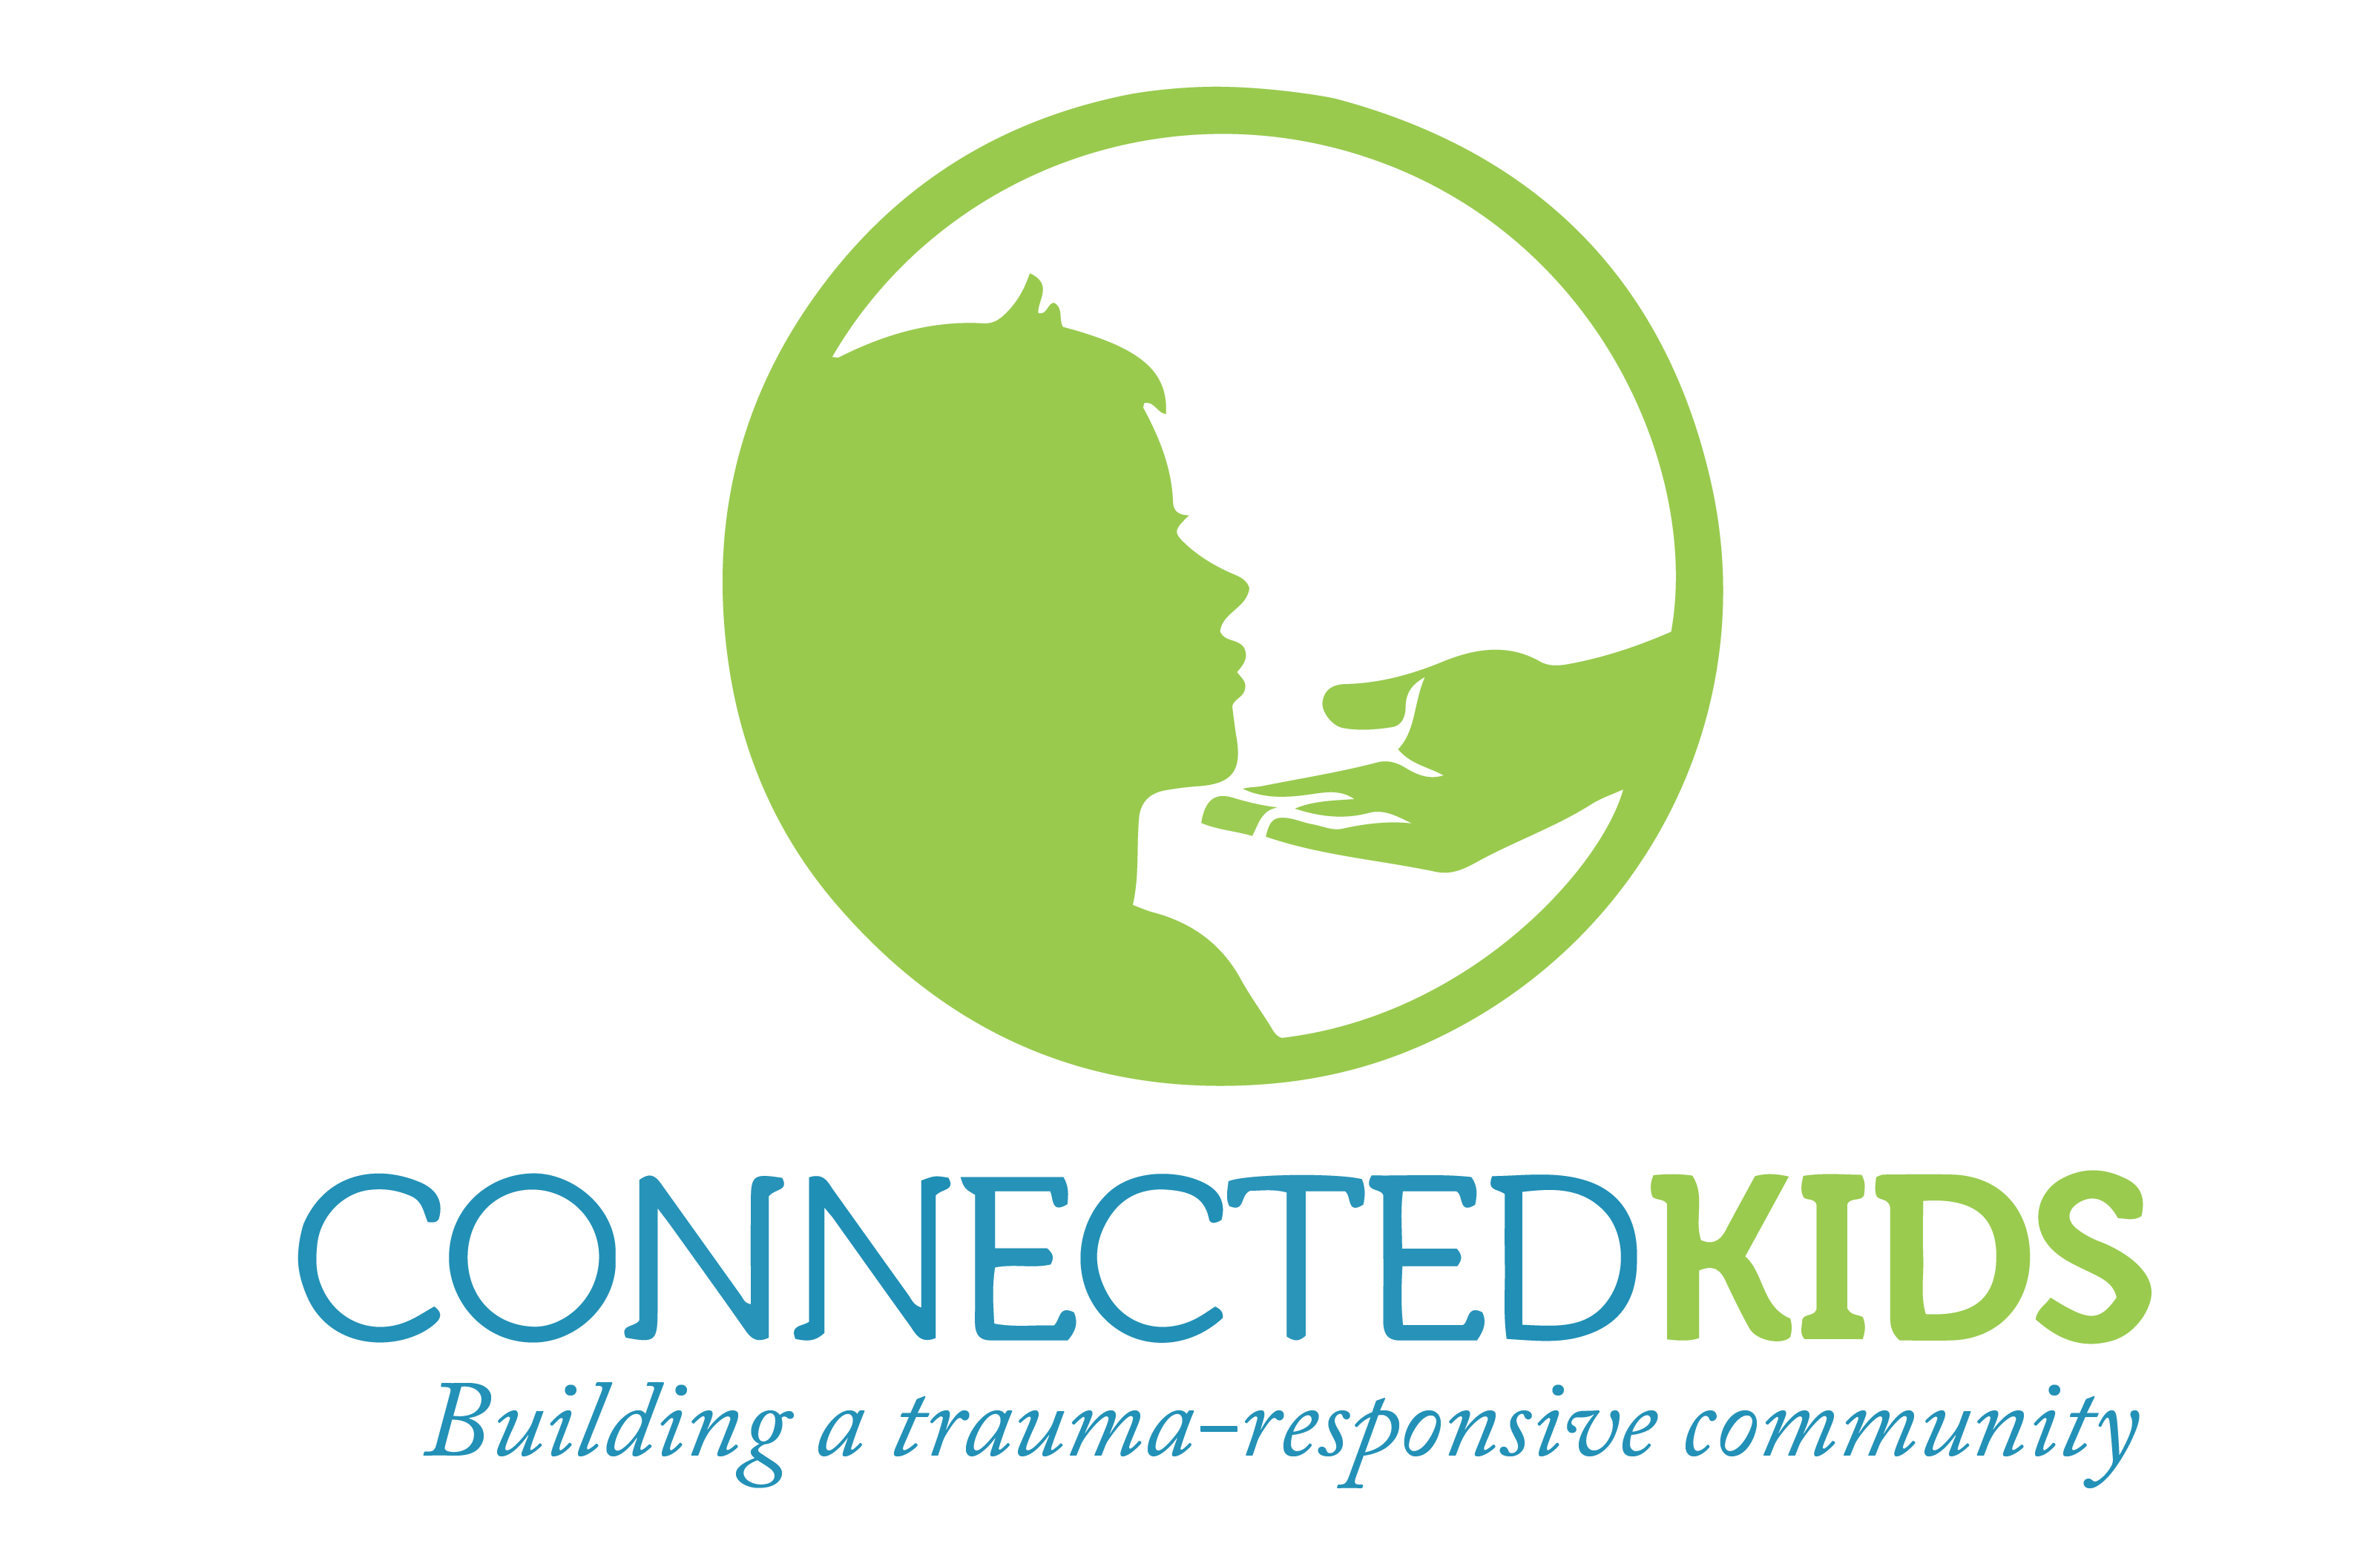 Connected Kids - Building a trauma-responsive community